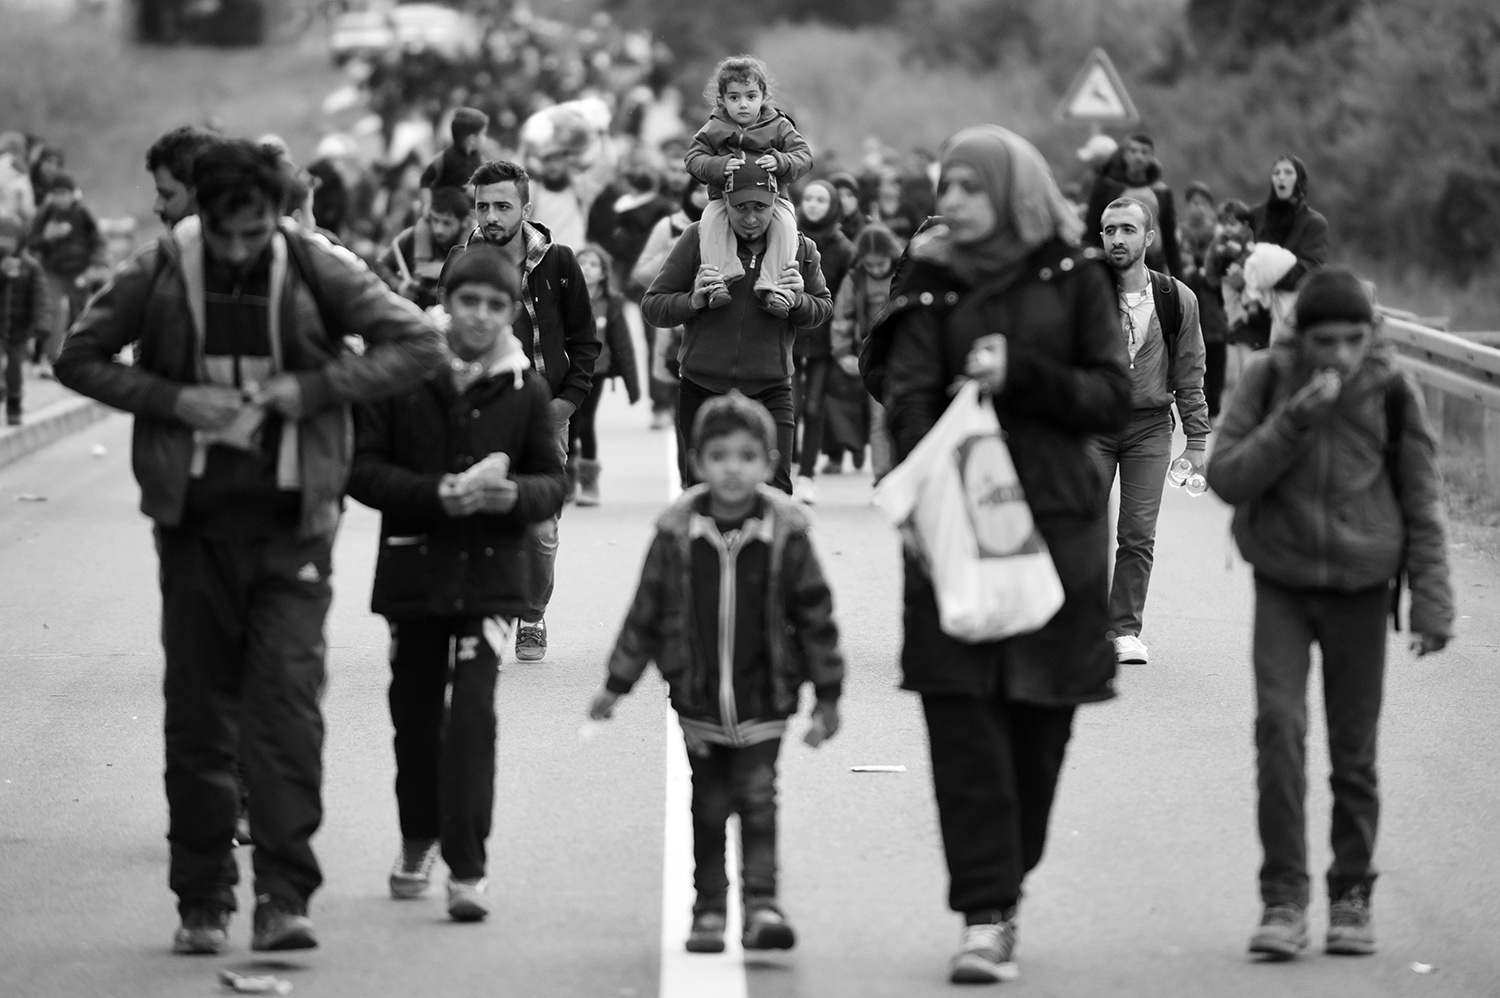 Refugees from the Middle East are walking down the road in a place Botovo, near Koprivnica, Croatia. Several thousand refugees arrived by train and started to walk towards the Hungarian border, which will be closed after a few hours.